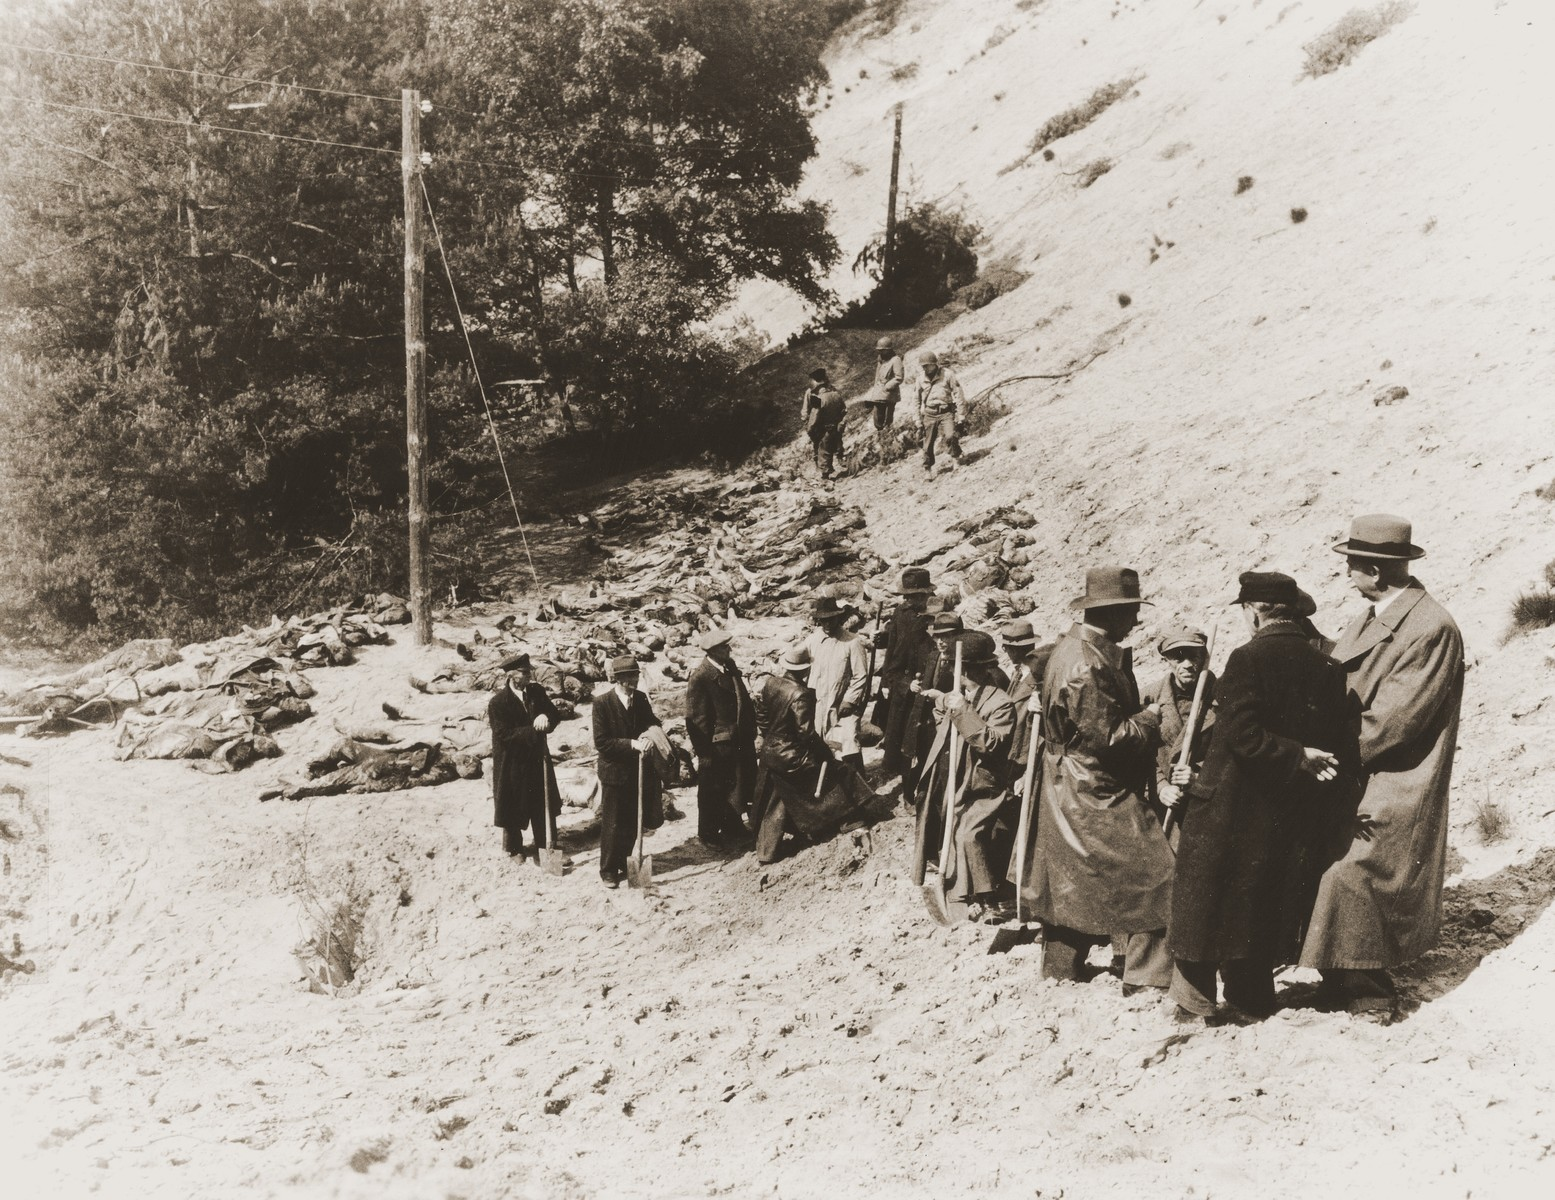 Under the supervision of American soldiers, German civilians leave the site where they exhumed the bodies of 71 political prisoners from a mass grave on Wenzelnberg near Solingen-Ohligs.    The victims, most of whom were taken from Luettringhausen prison, were shot and buried by the Gestapo following orders to eliminate all Reich enemies just before the end of the war.